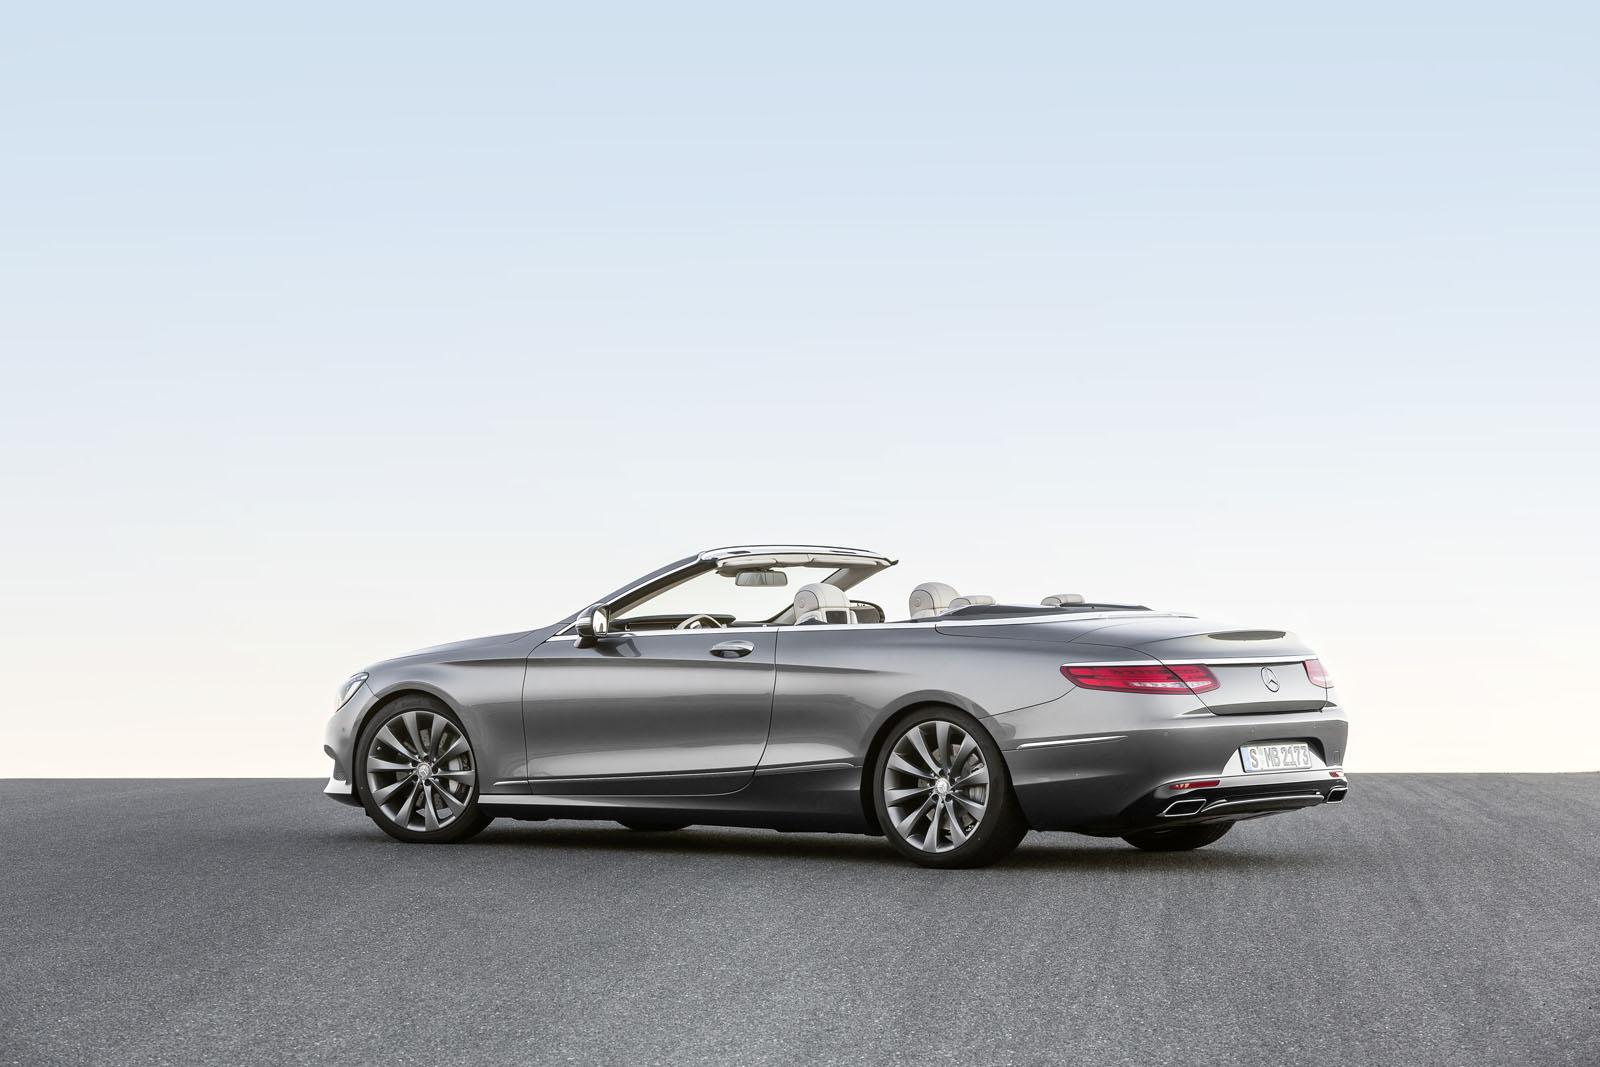 2016 Mercedes S Class Cabriolet rear three quarter with top down unveiled